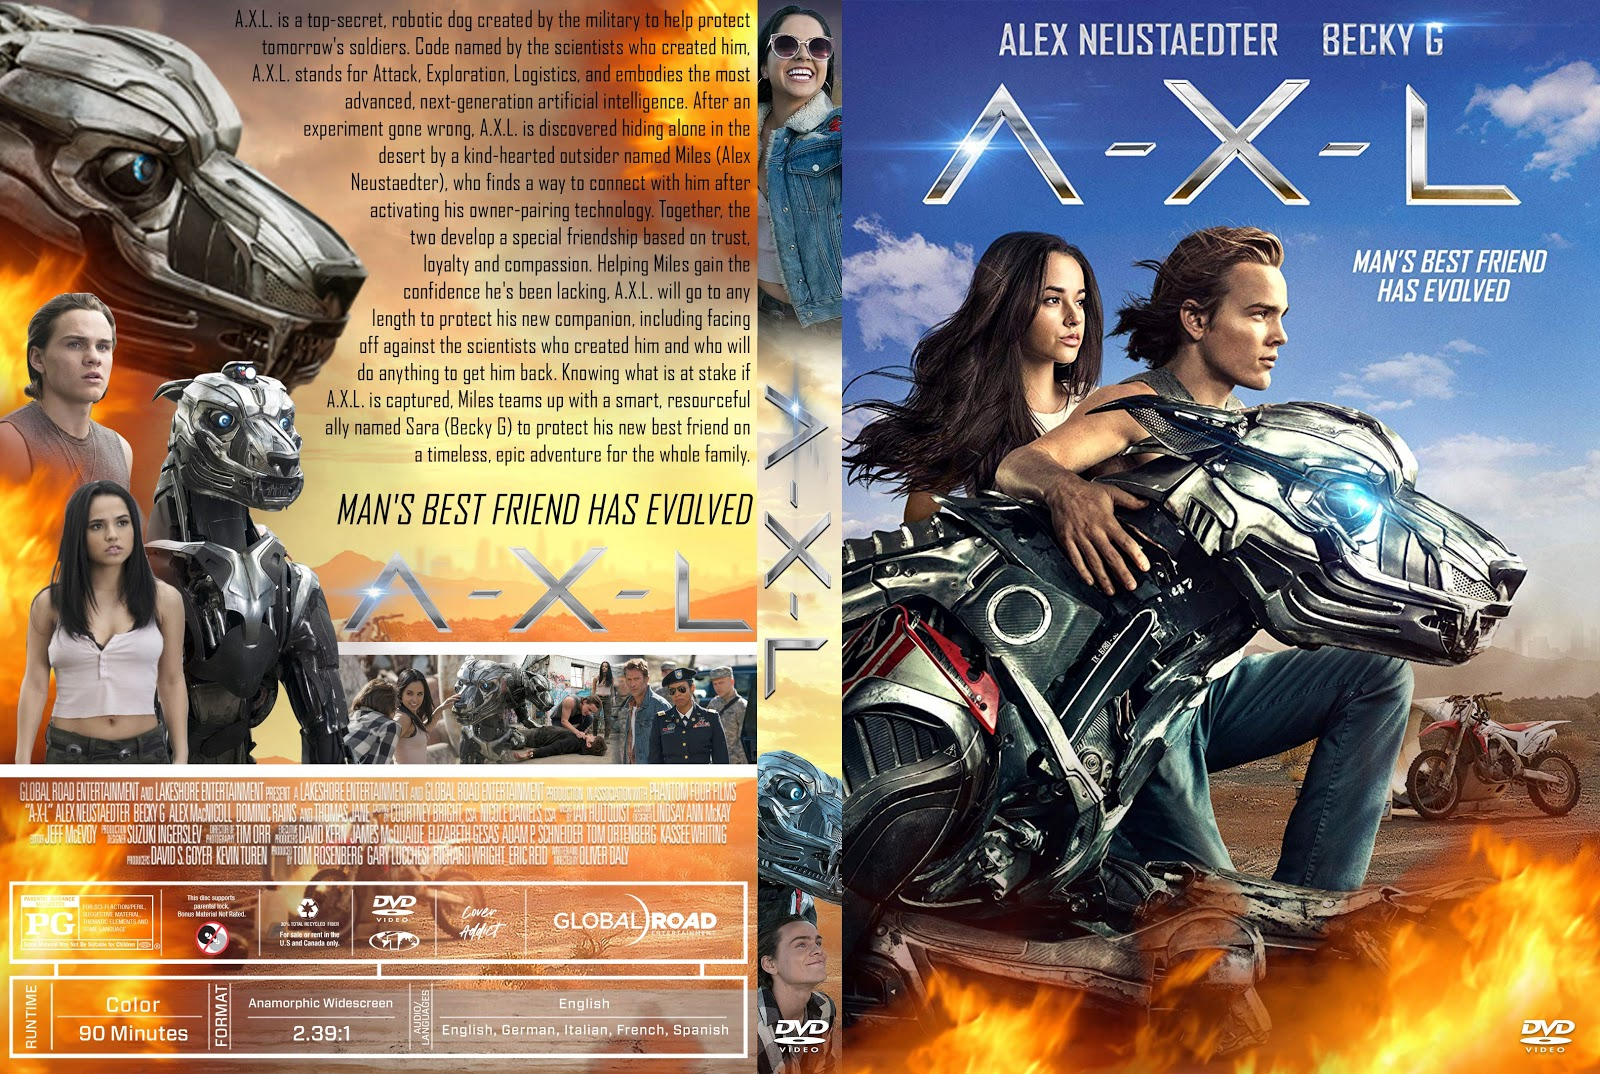 Axl Movie 2018 a-x-l dvd cover | cover addict - free dvd, bluray covers and